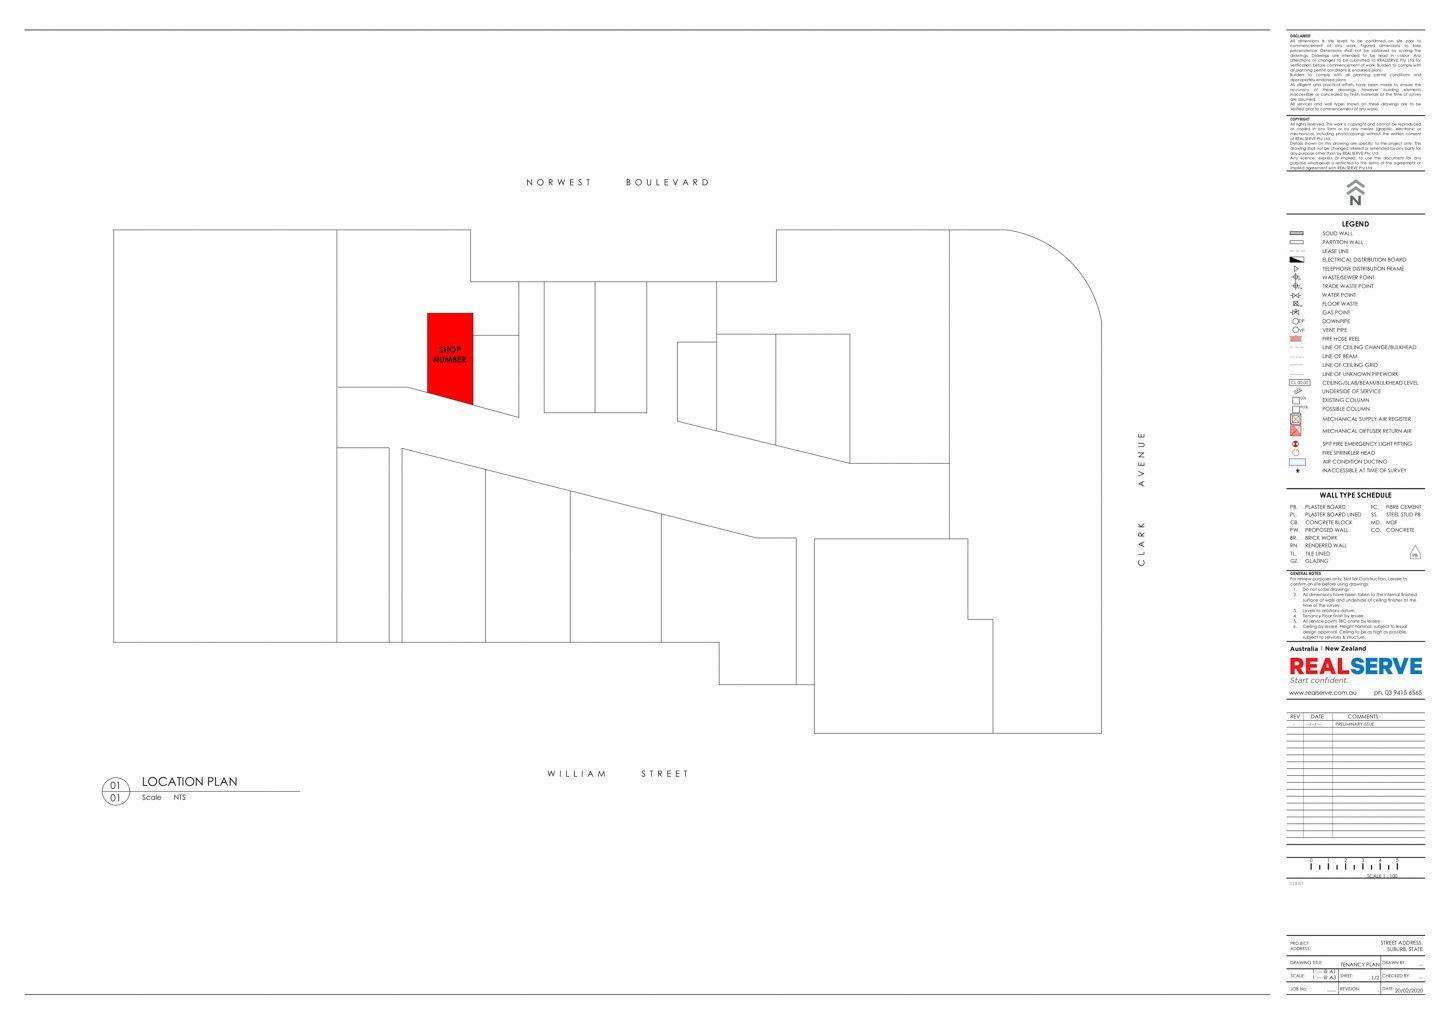 REALSERVE RETAIL TENANCY LOCATION PLAN SAMPLE OF PROPERTY